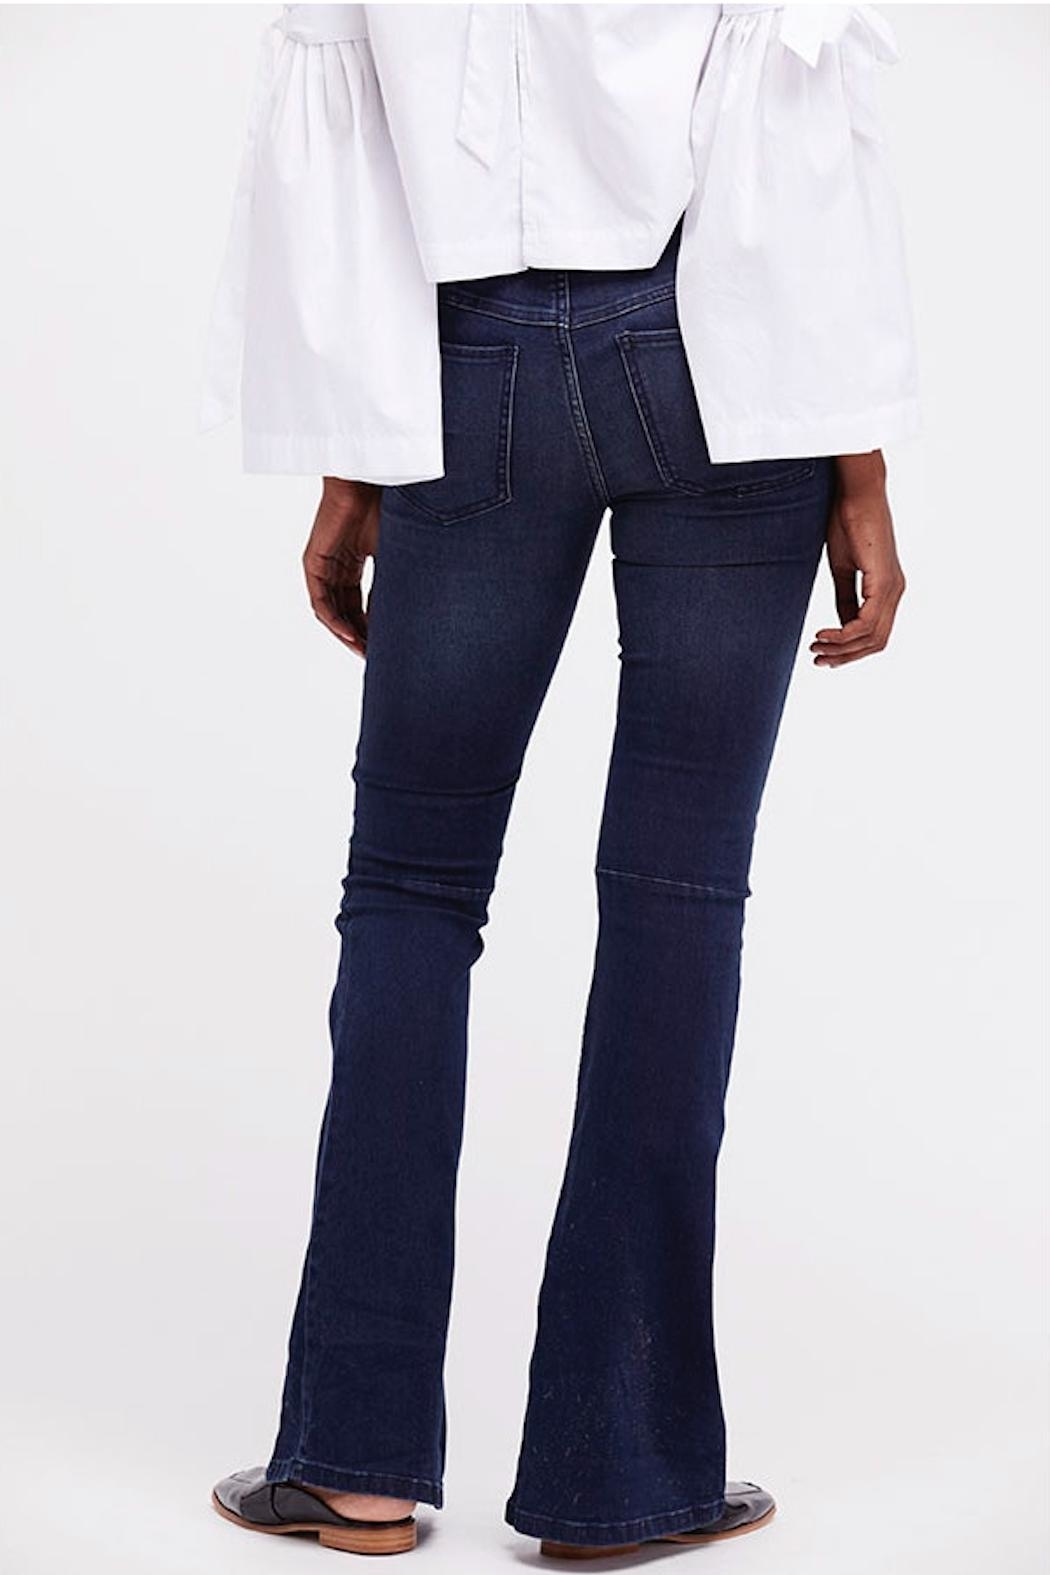 Free People Penny Flair Jeans - Side Cropped Image